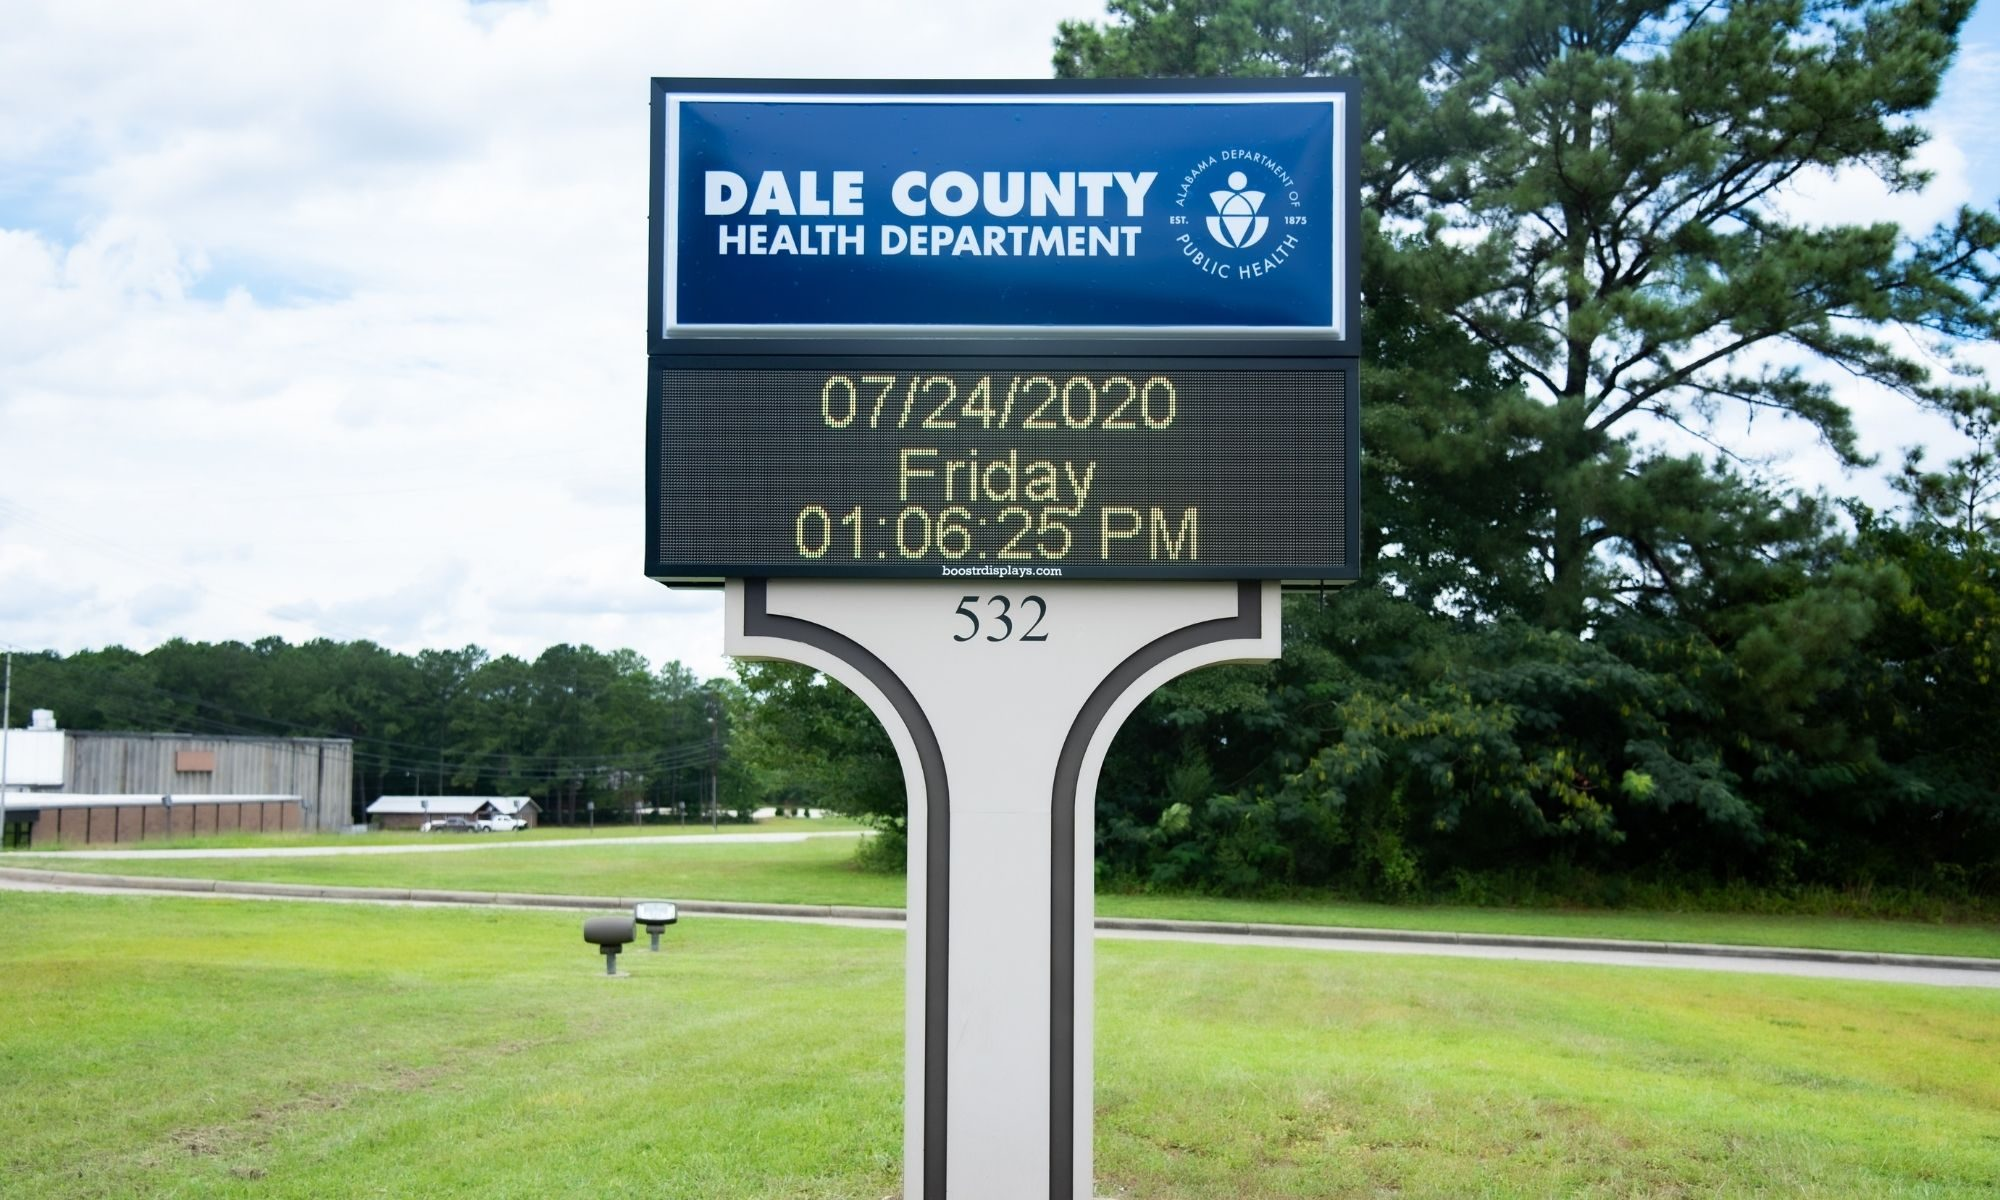 Dale County Health Department Outdoor Sign